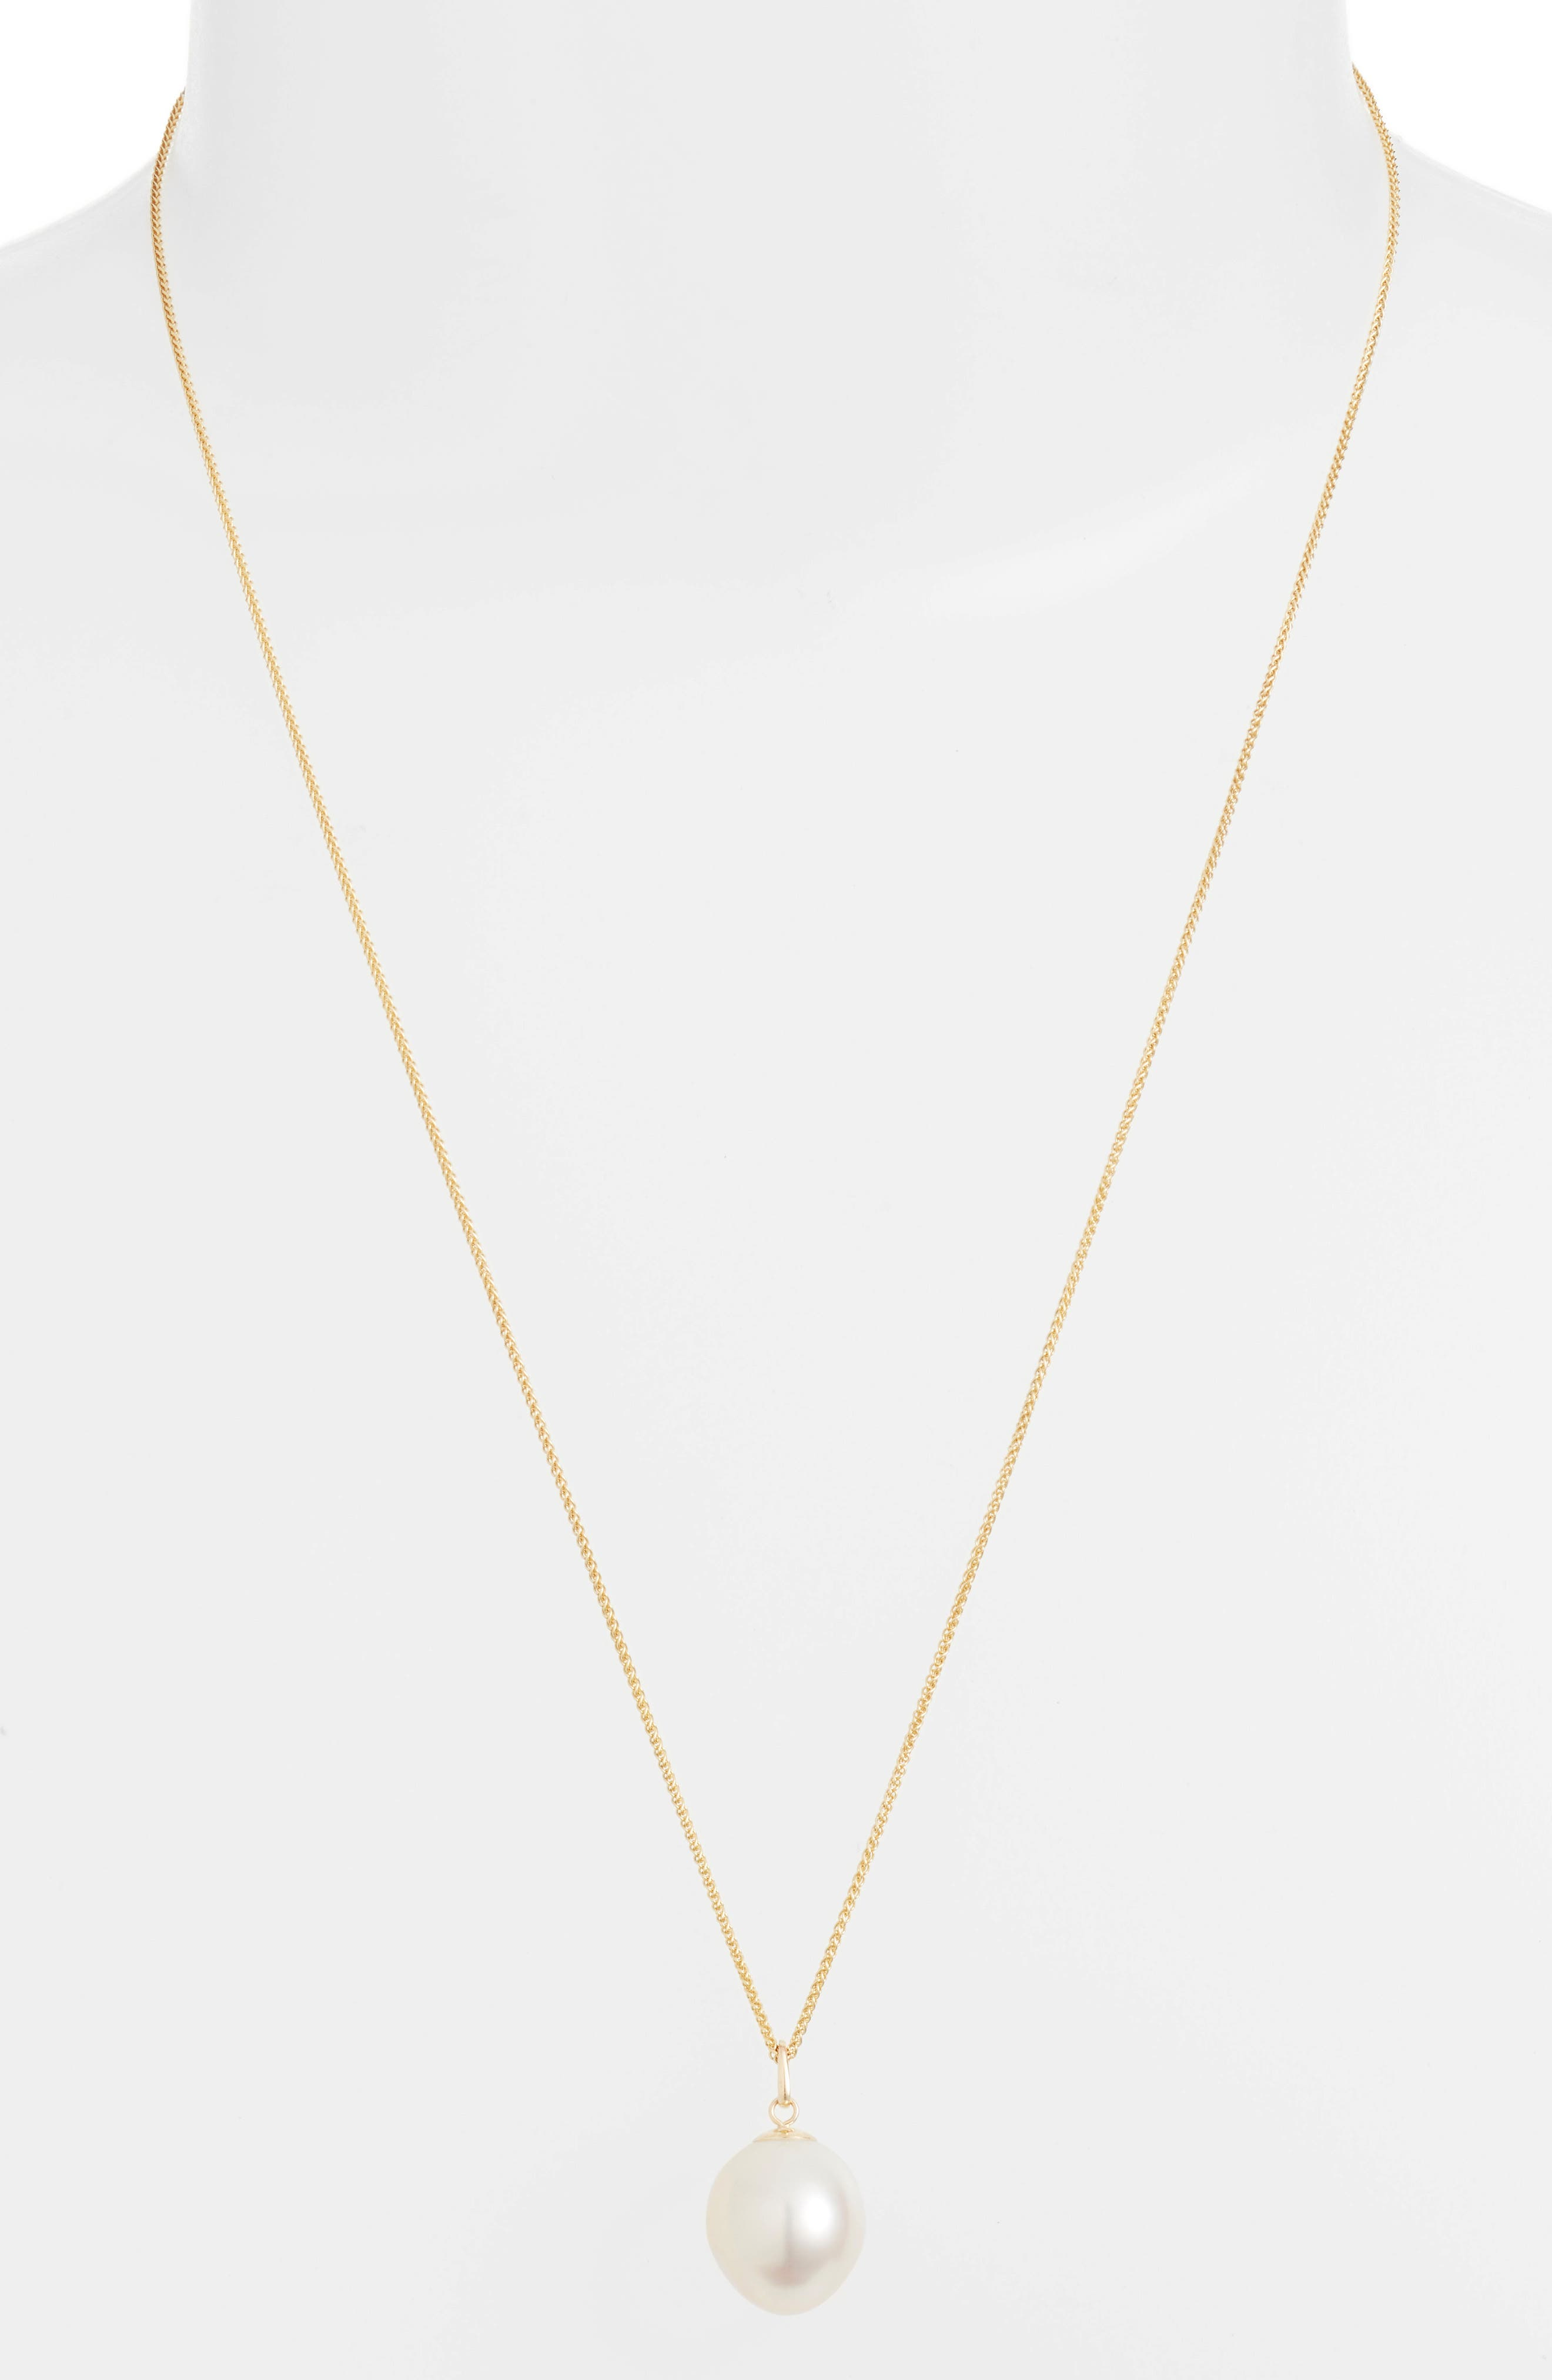 Double Chain Pearl Pendant Necklace,                             Alternate thumbnail 2, color,                             Yellow Gold/ White Pearl